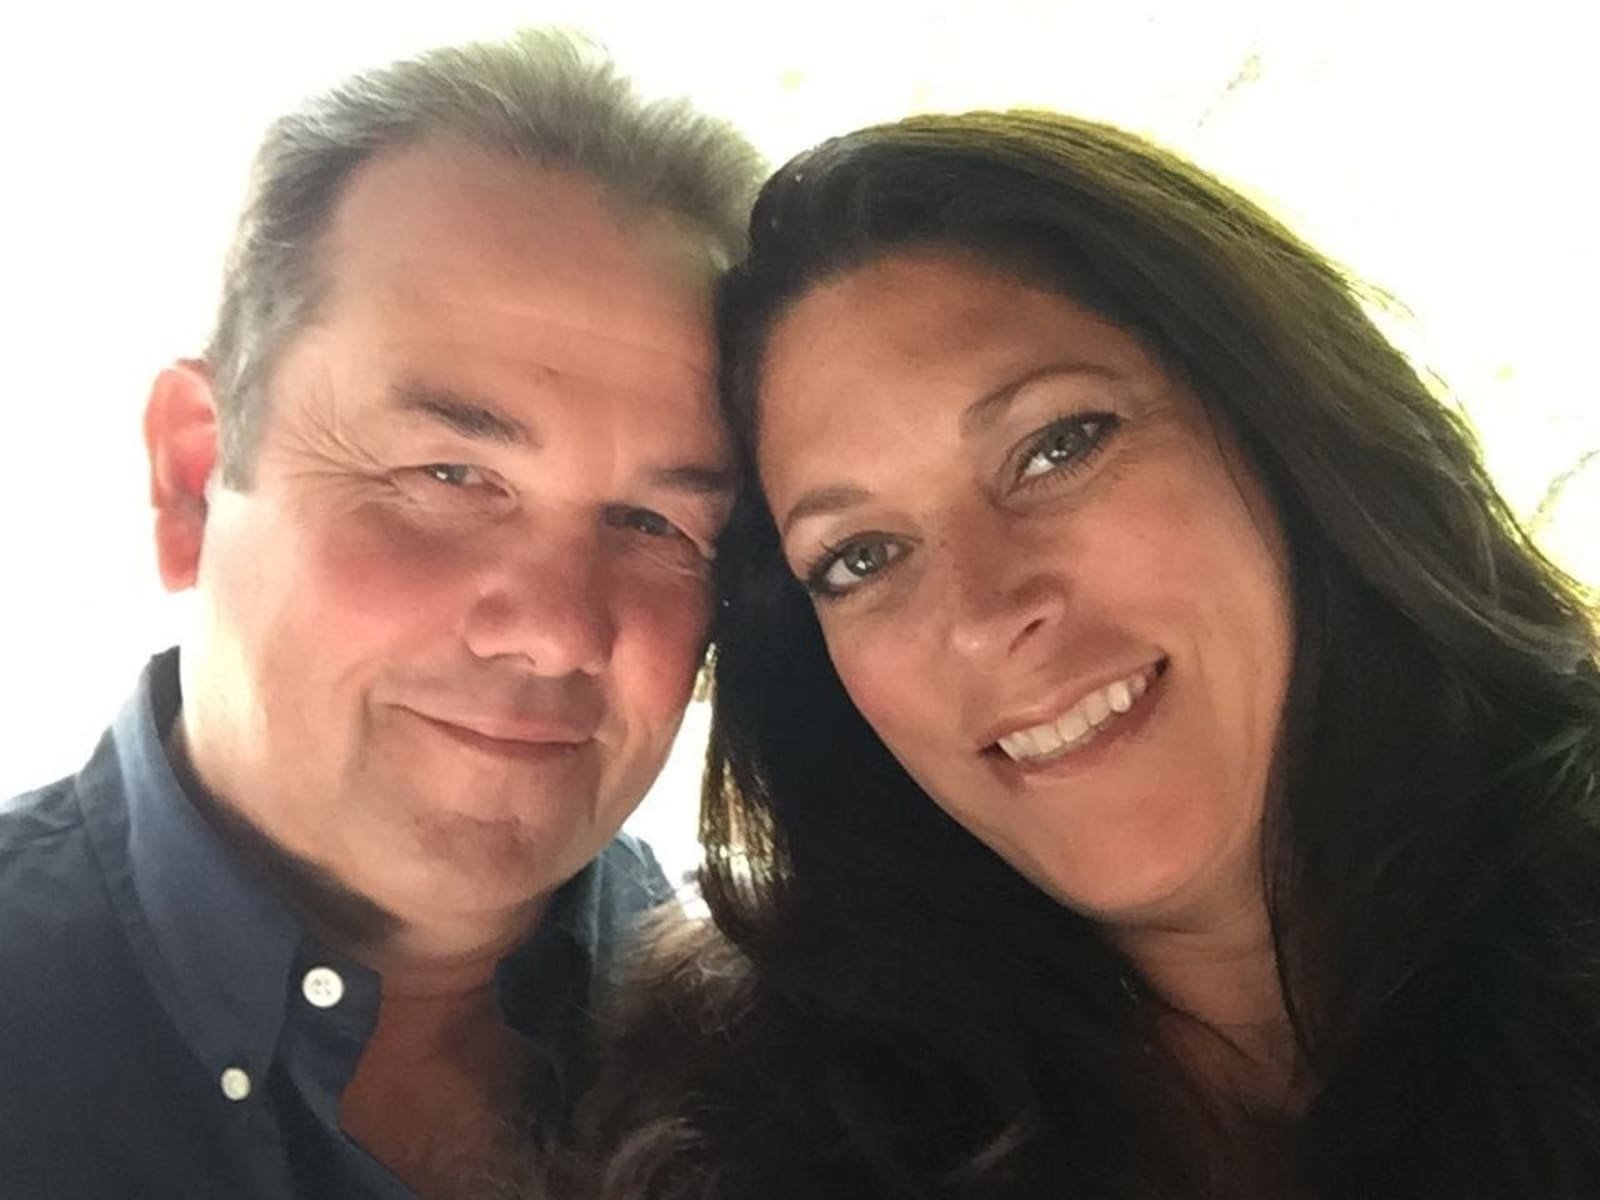 Darlene & Barry from Albany, New York, United States